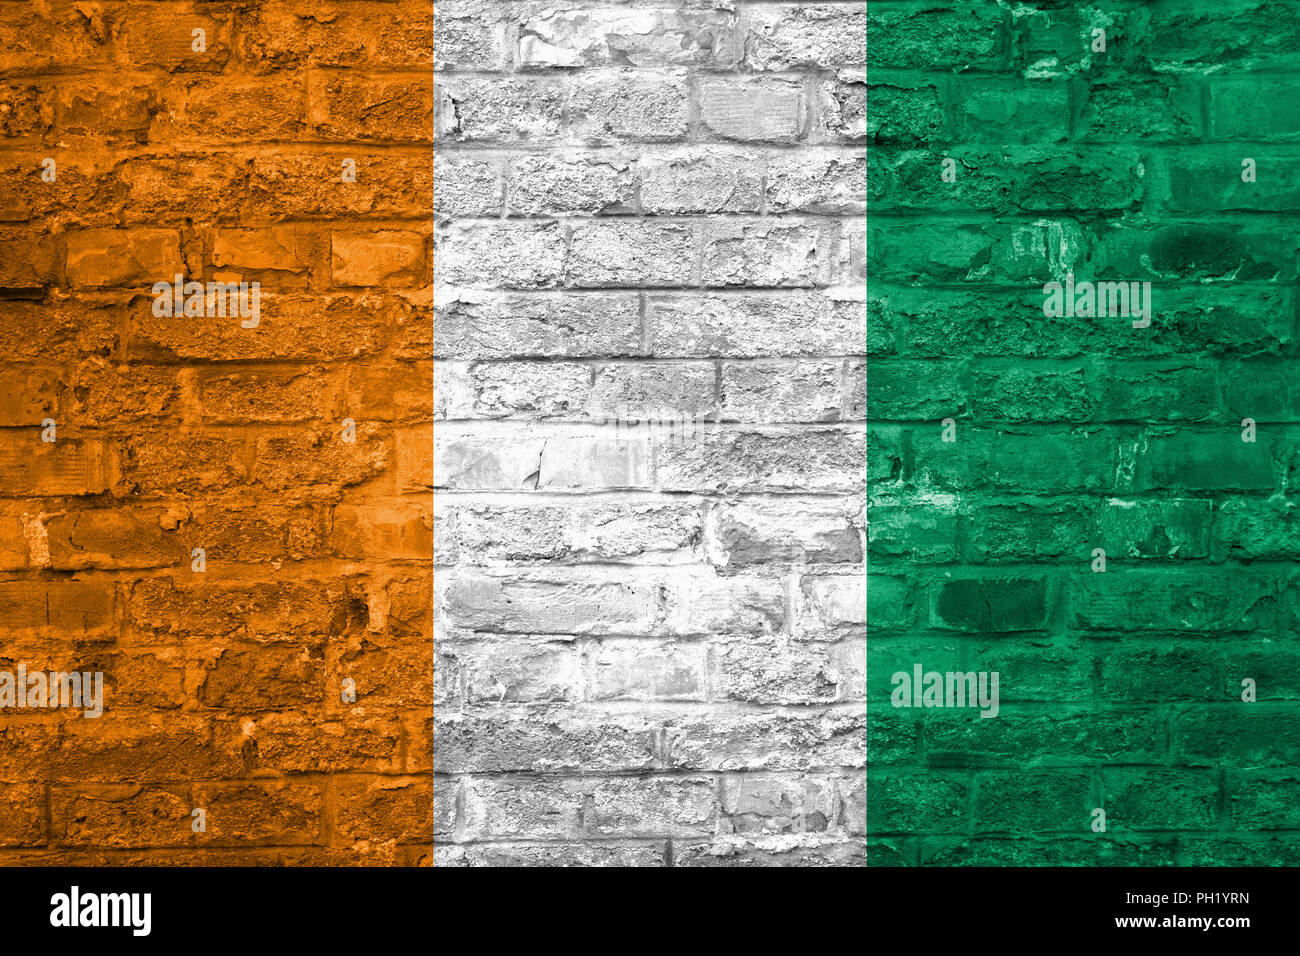 Flag of Cote d'Ivoire over an old brick wall background, surface - Stock Image